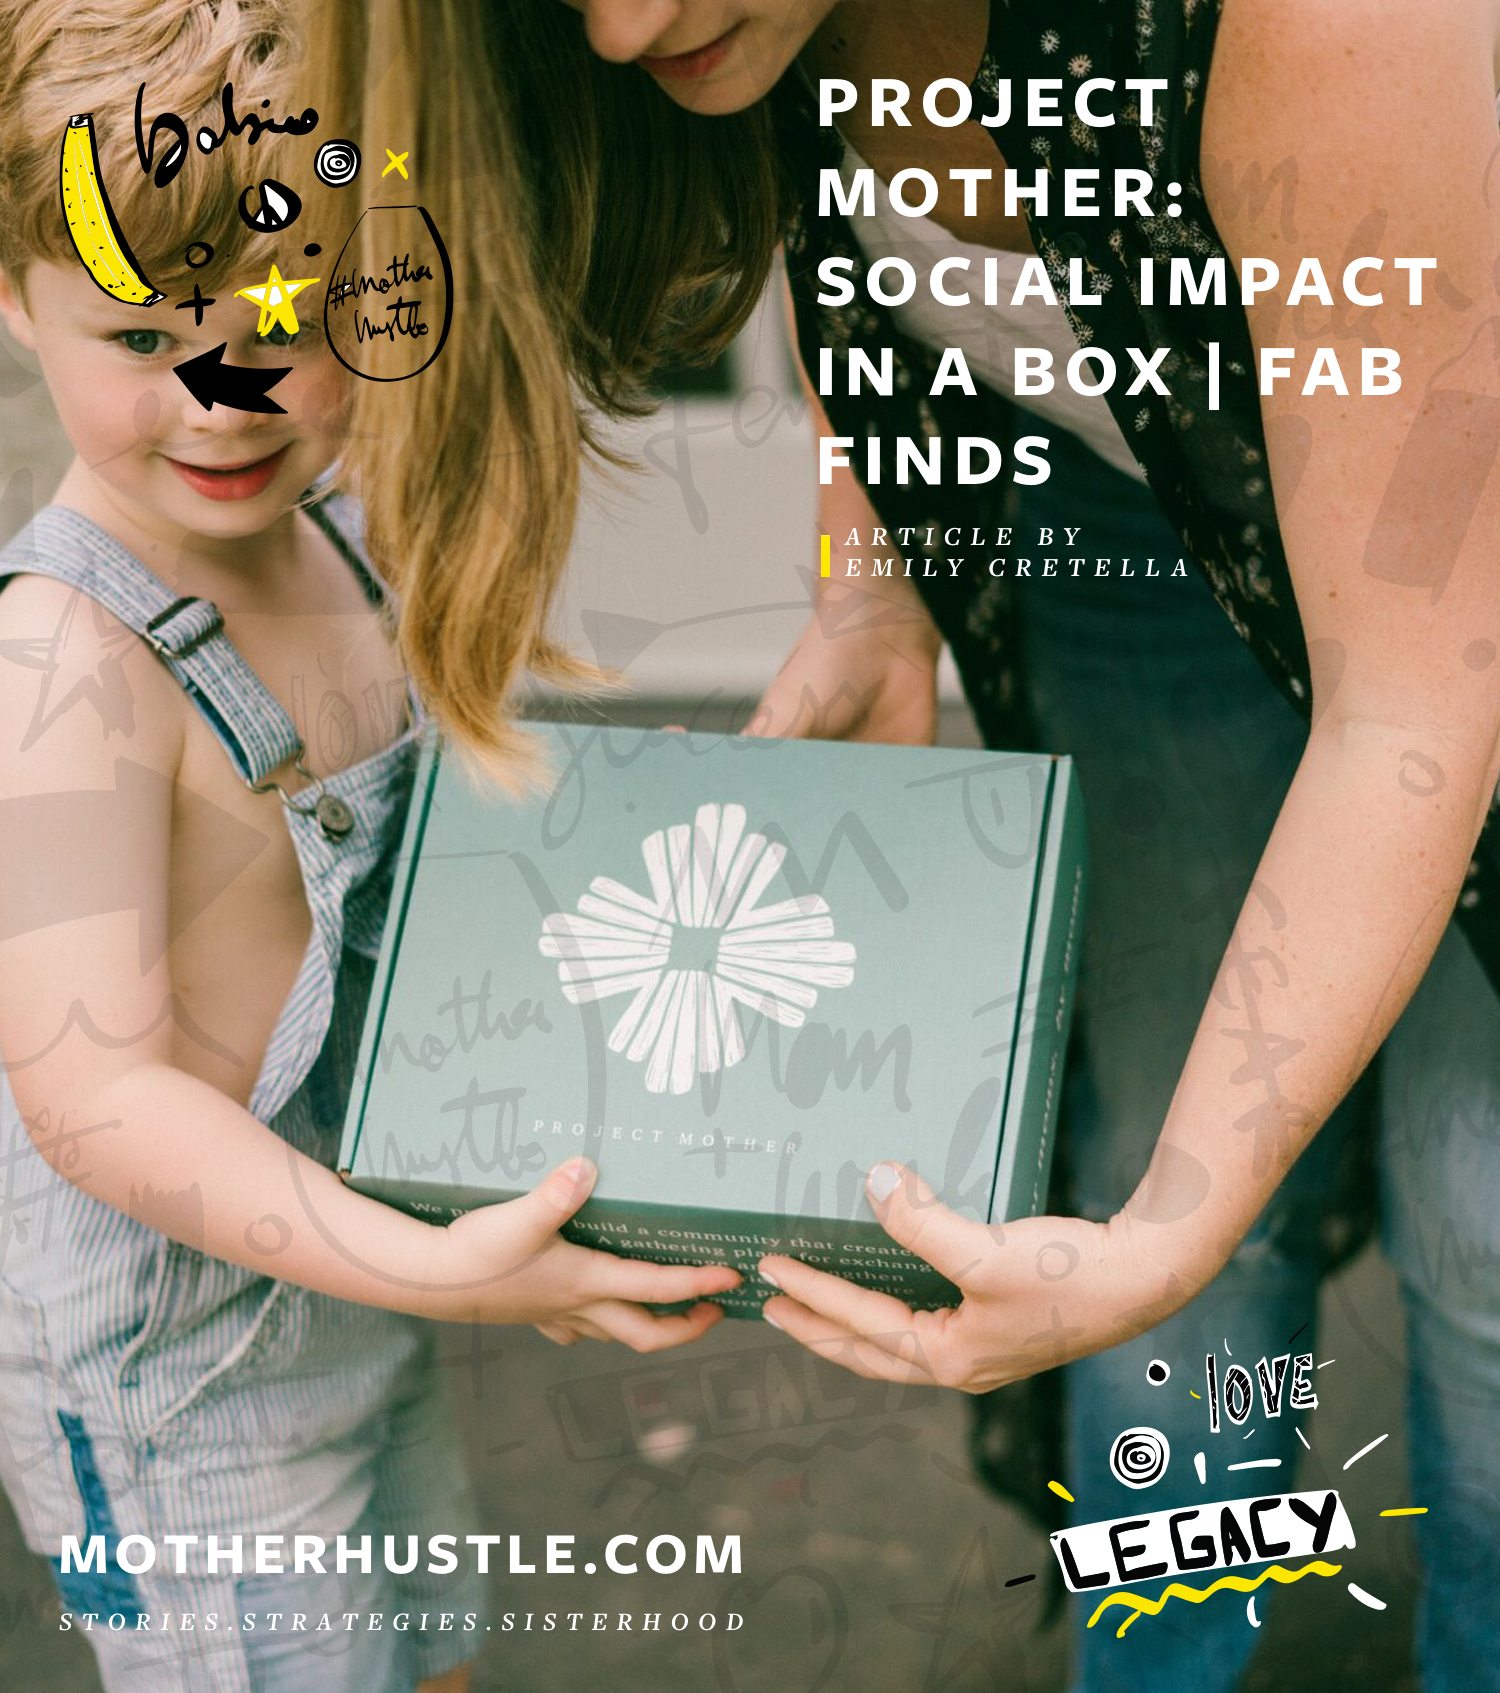 Project Mother- Social Impact in a Box - MotherHustle Fab Finds